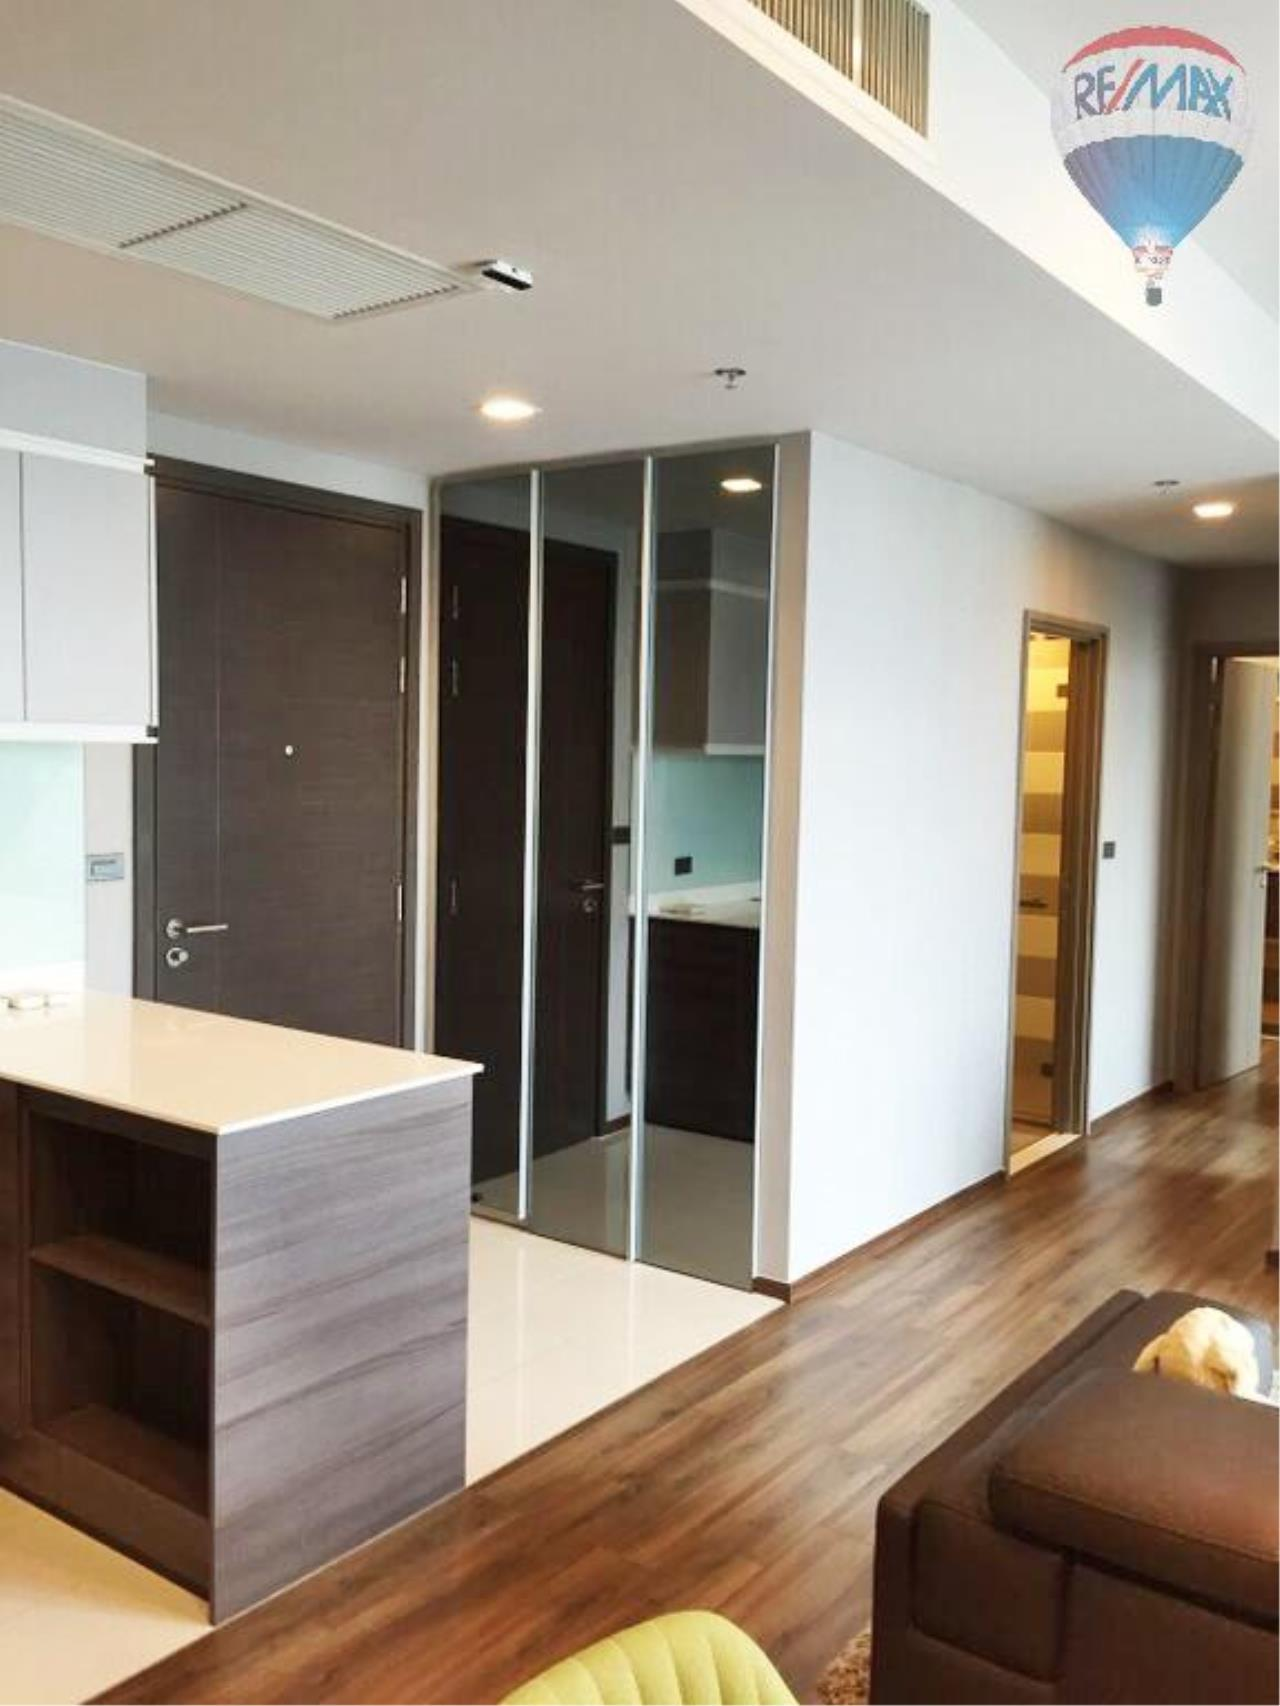 RE/MAX Properties Agency's Condominium for rent at Ekamai 2